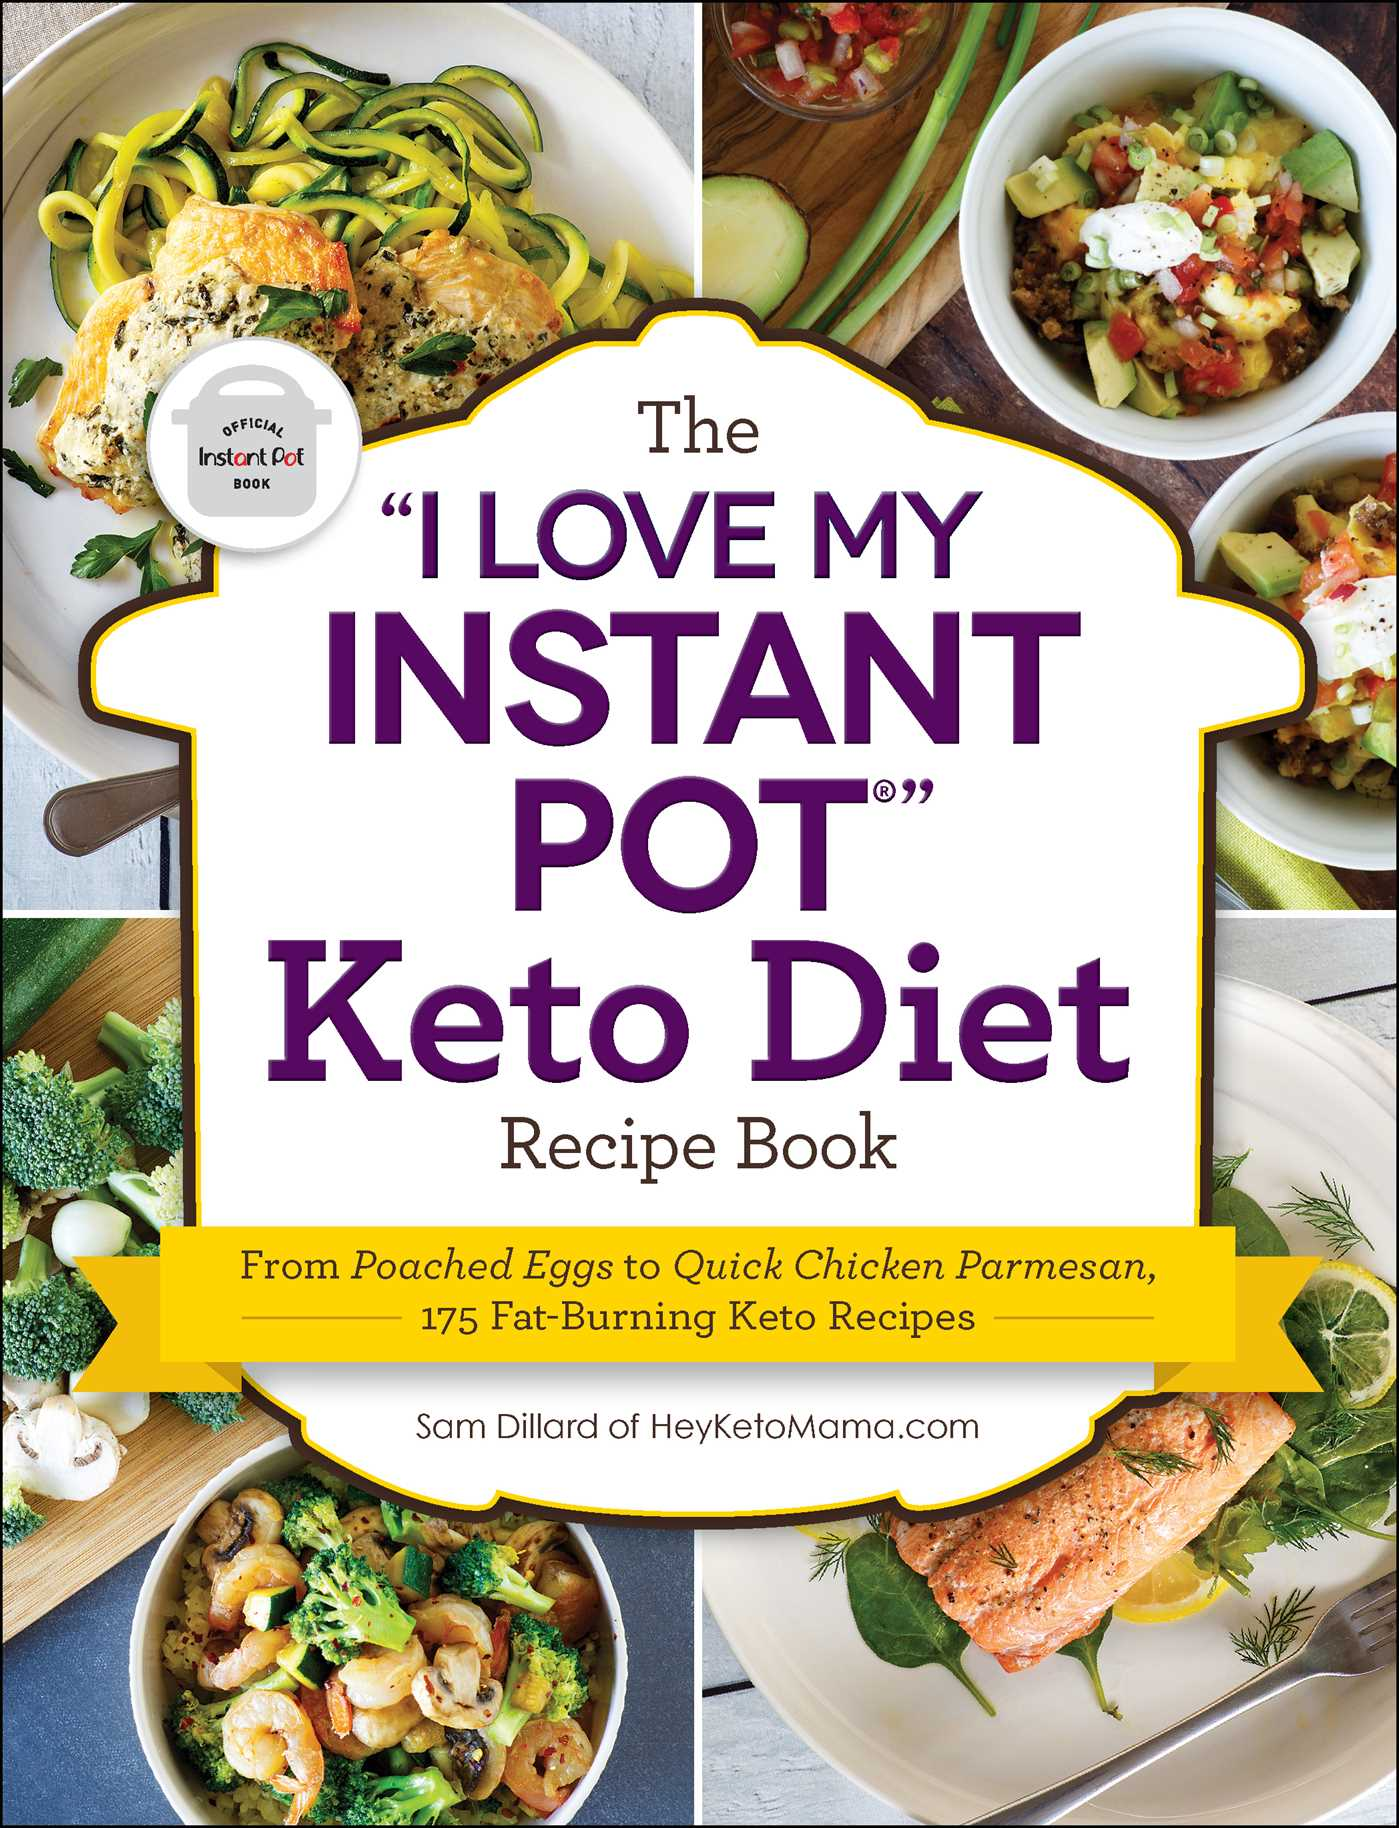 The i love my instant pot keto diet recipe book 9781507207680 hr